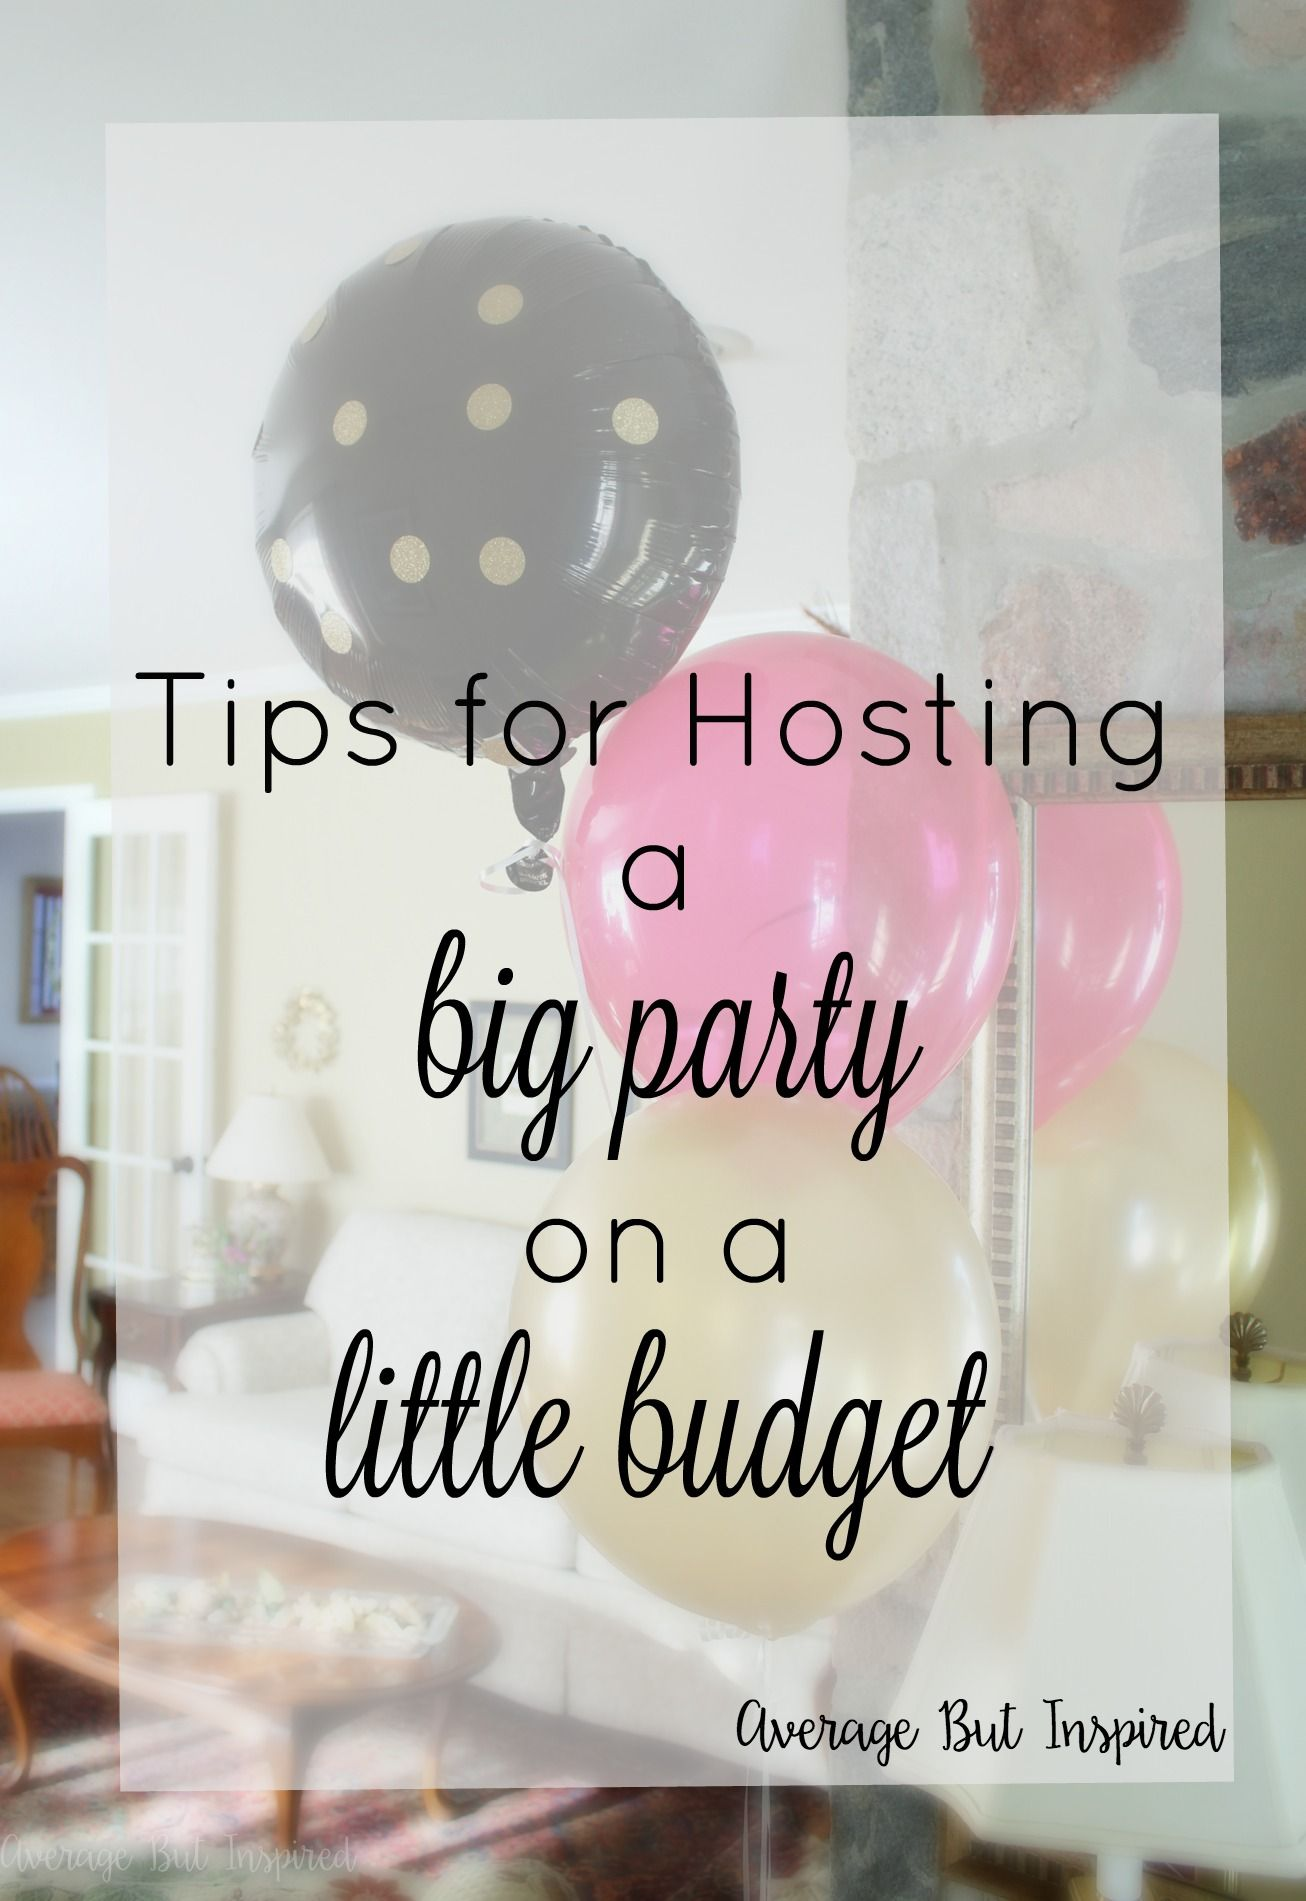 Decoration ideas for 40th wedding anniversary   Tips for Hosting a Big Party on a Little Budget  Big party Big